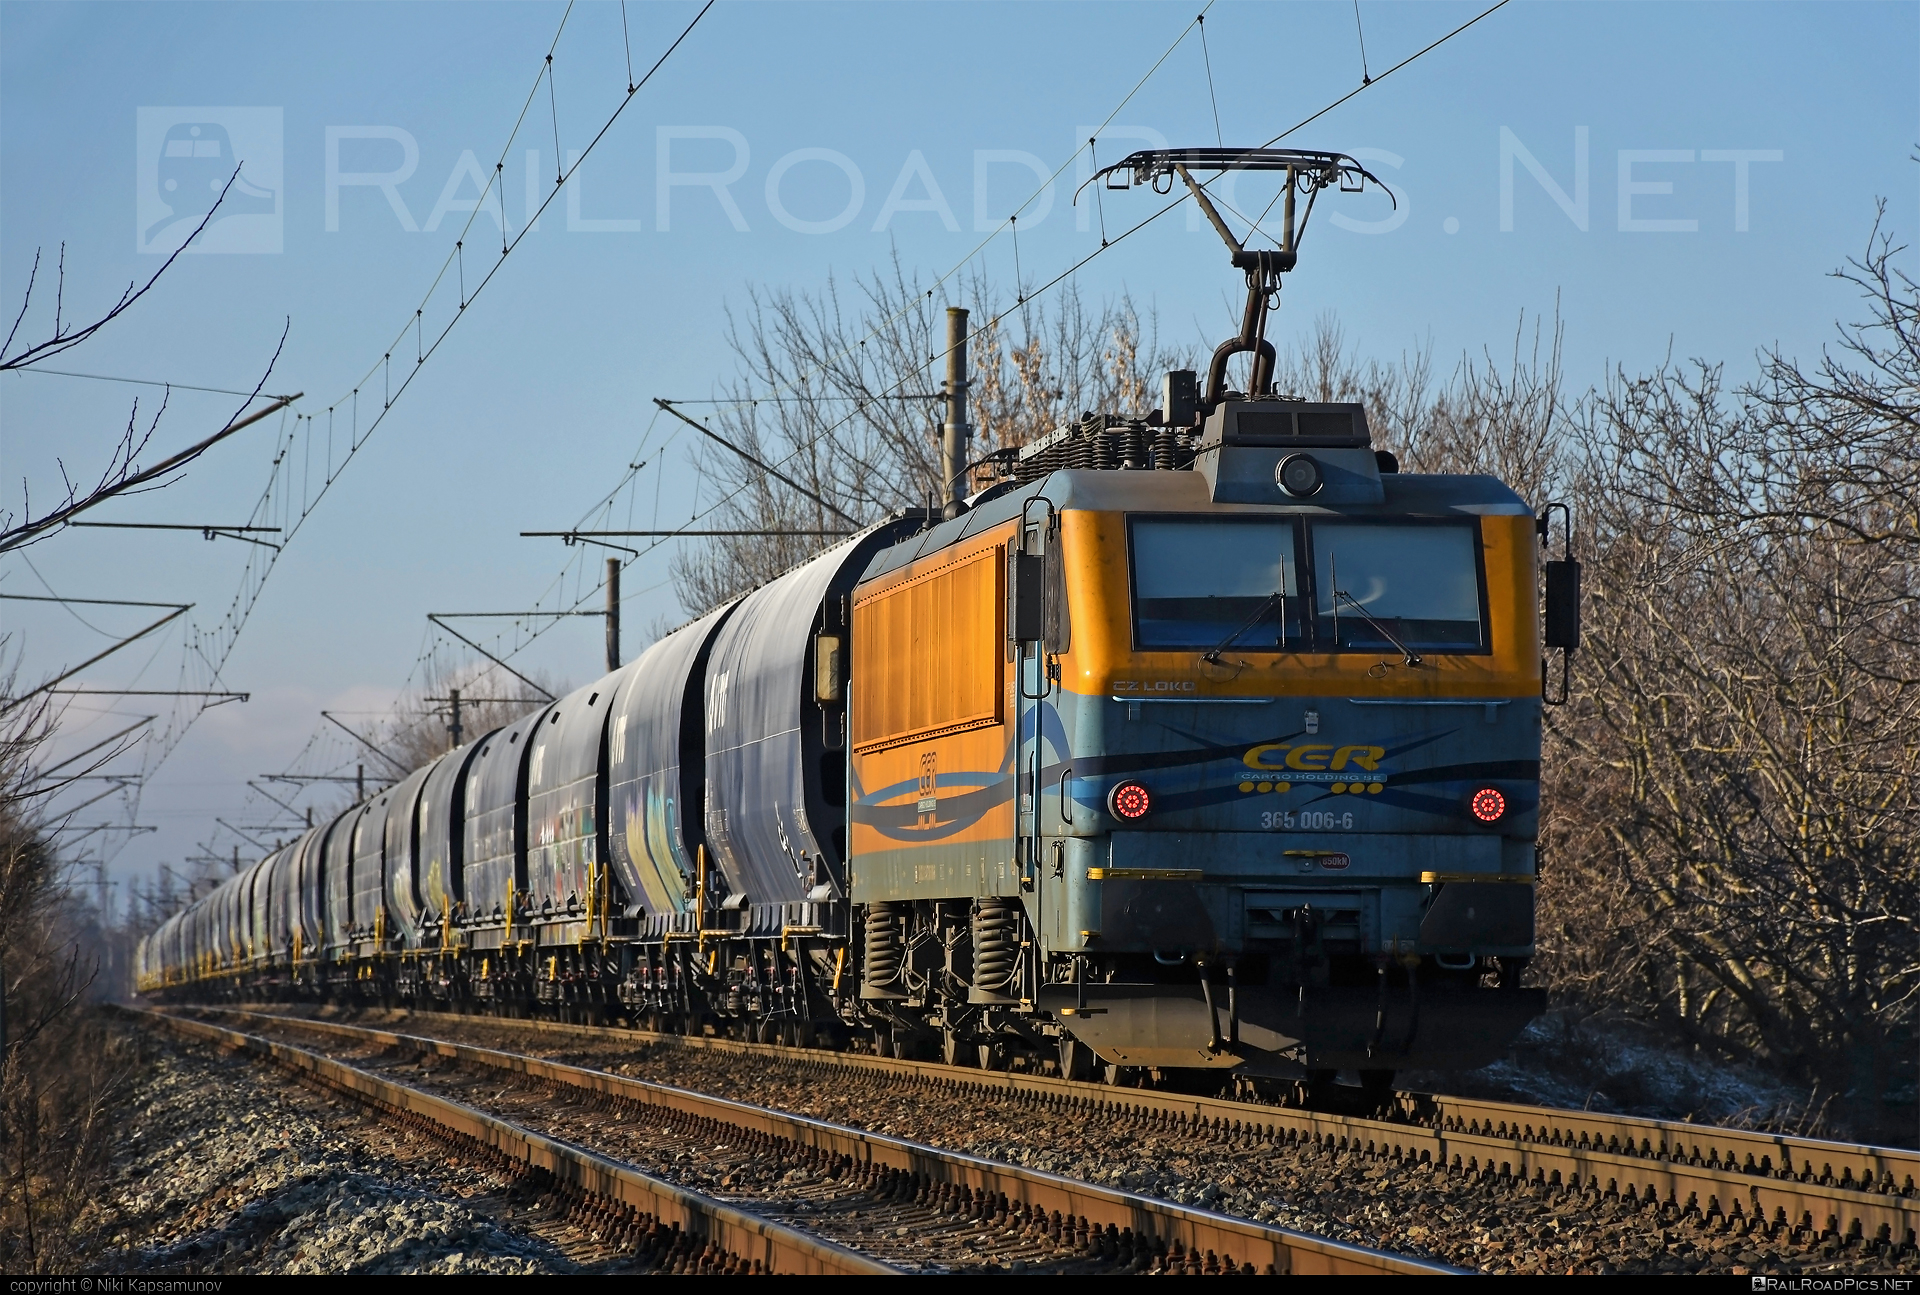 CZ LOKO EffiLiner 3000 - 365 006-6 operated by CER Slovakia a.s. #belgicanka #cer #cersk #cerslovakia #cerslovakiaas #czloko #czlokoas #effiliner #effiliner3000 #sncb12 #sncbclass12